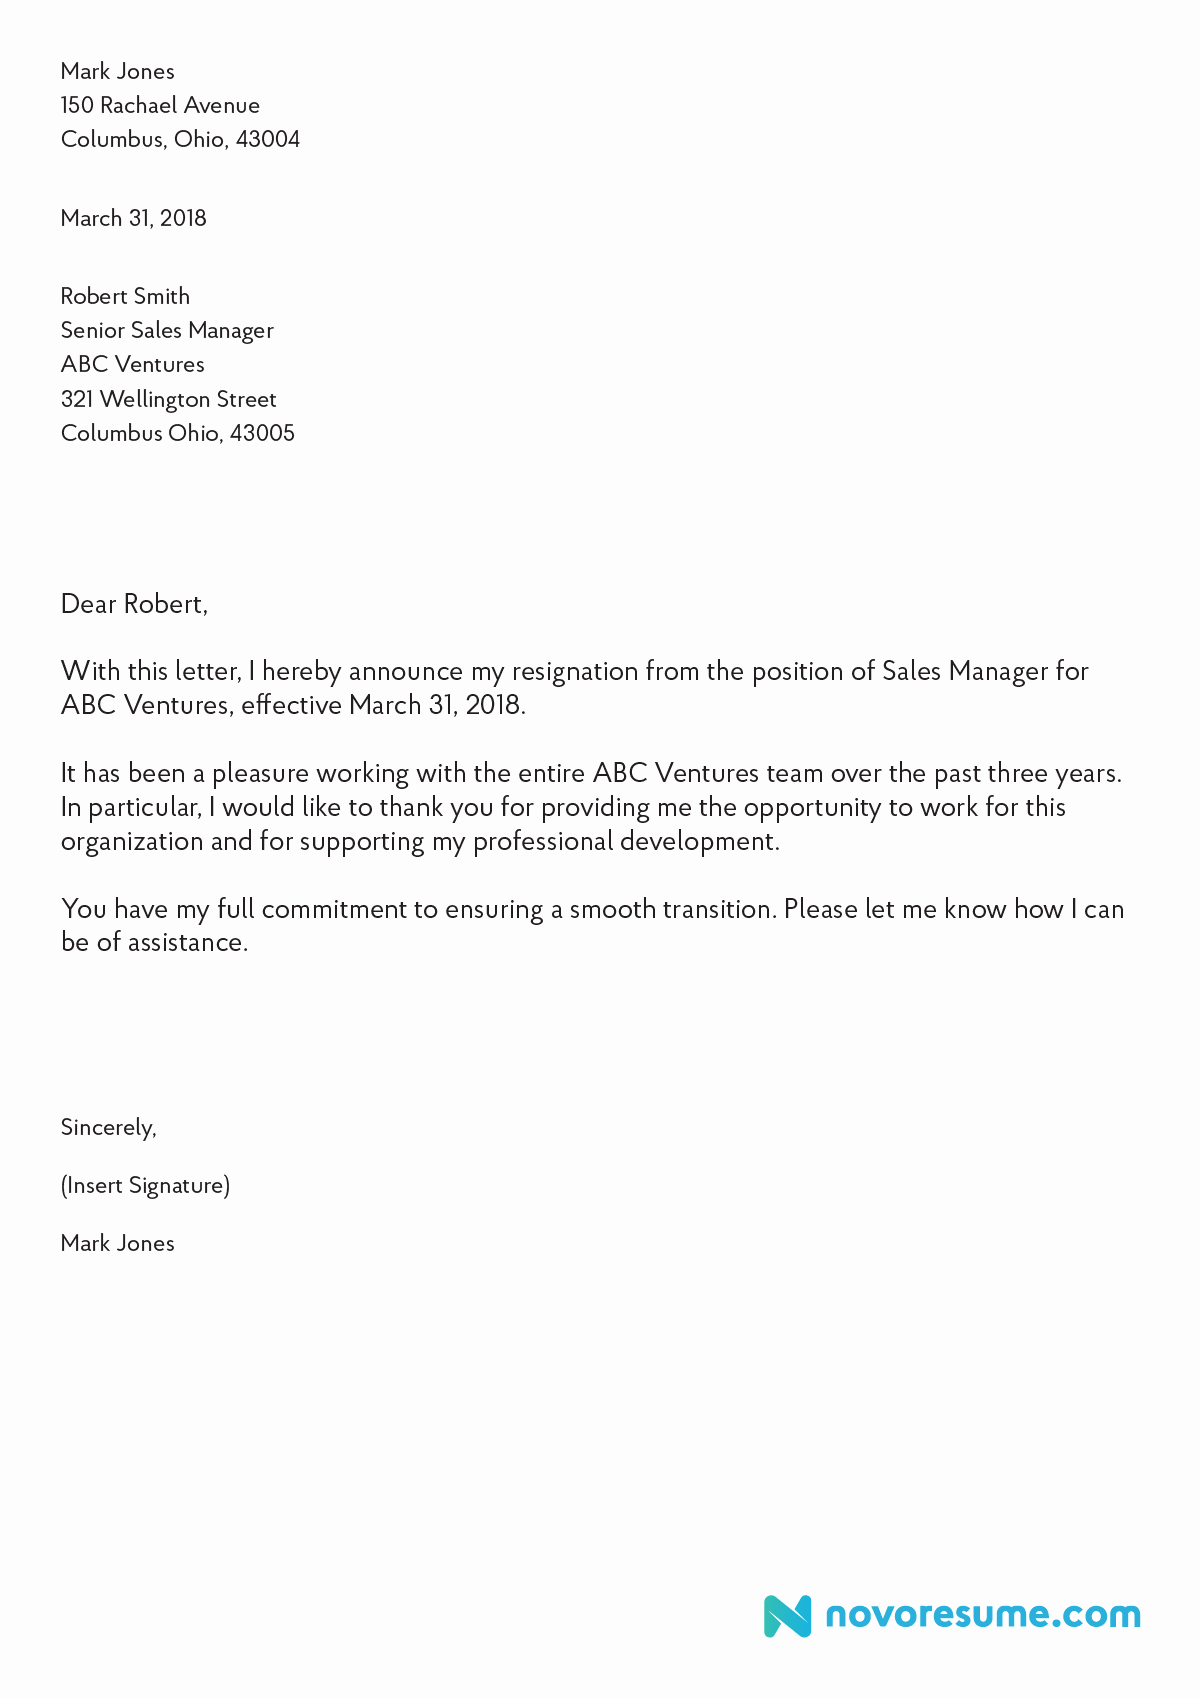 Resignation Letter Samples Elegant How to Write A Letter Of Resignation – 2019 Extensive Guide